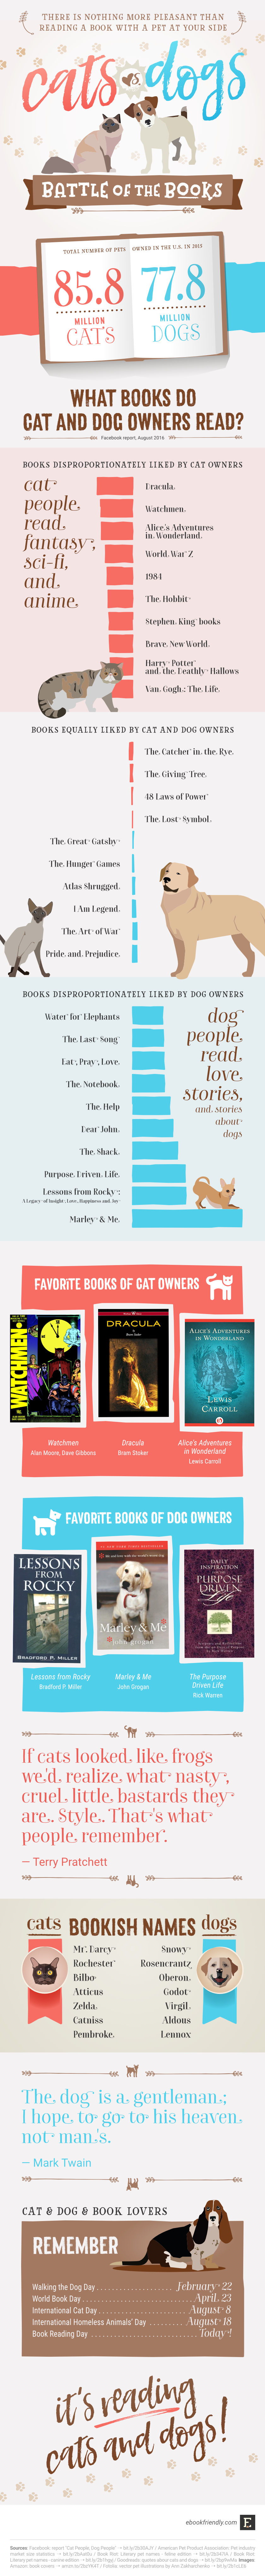 Favorite books of cat and dog lovers (infographic) | Ebook Friendly